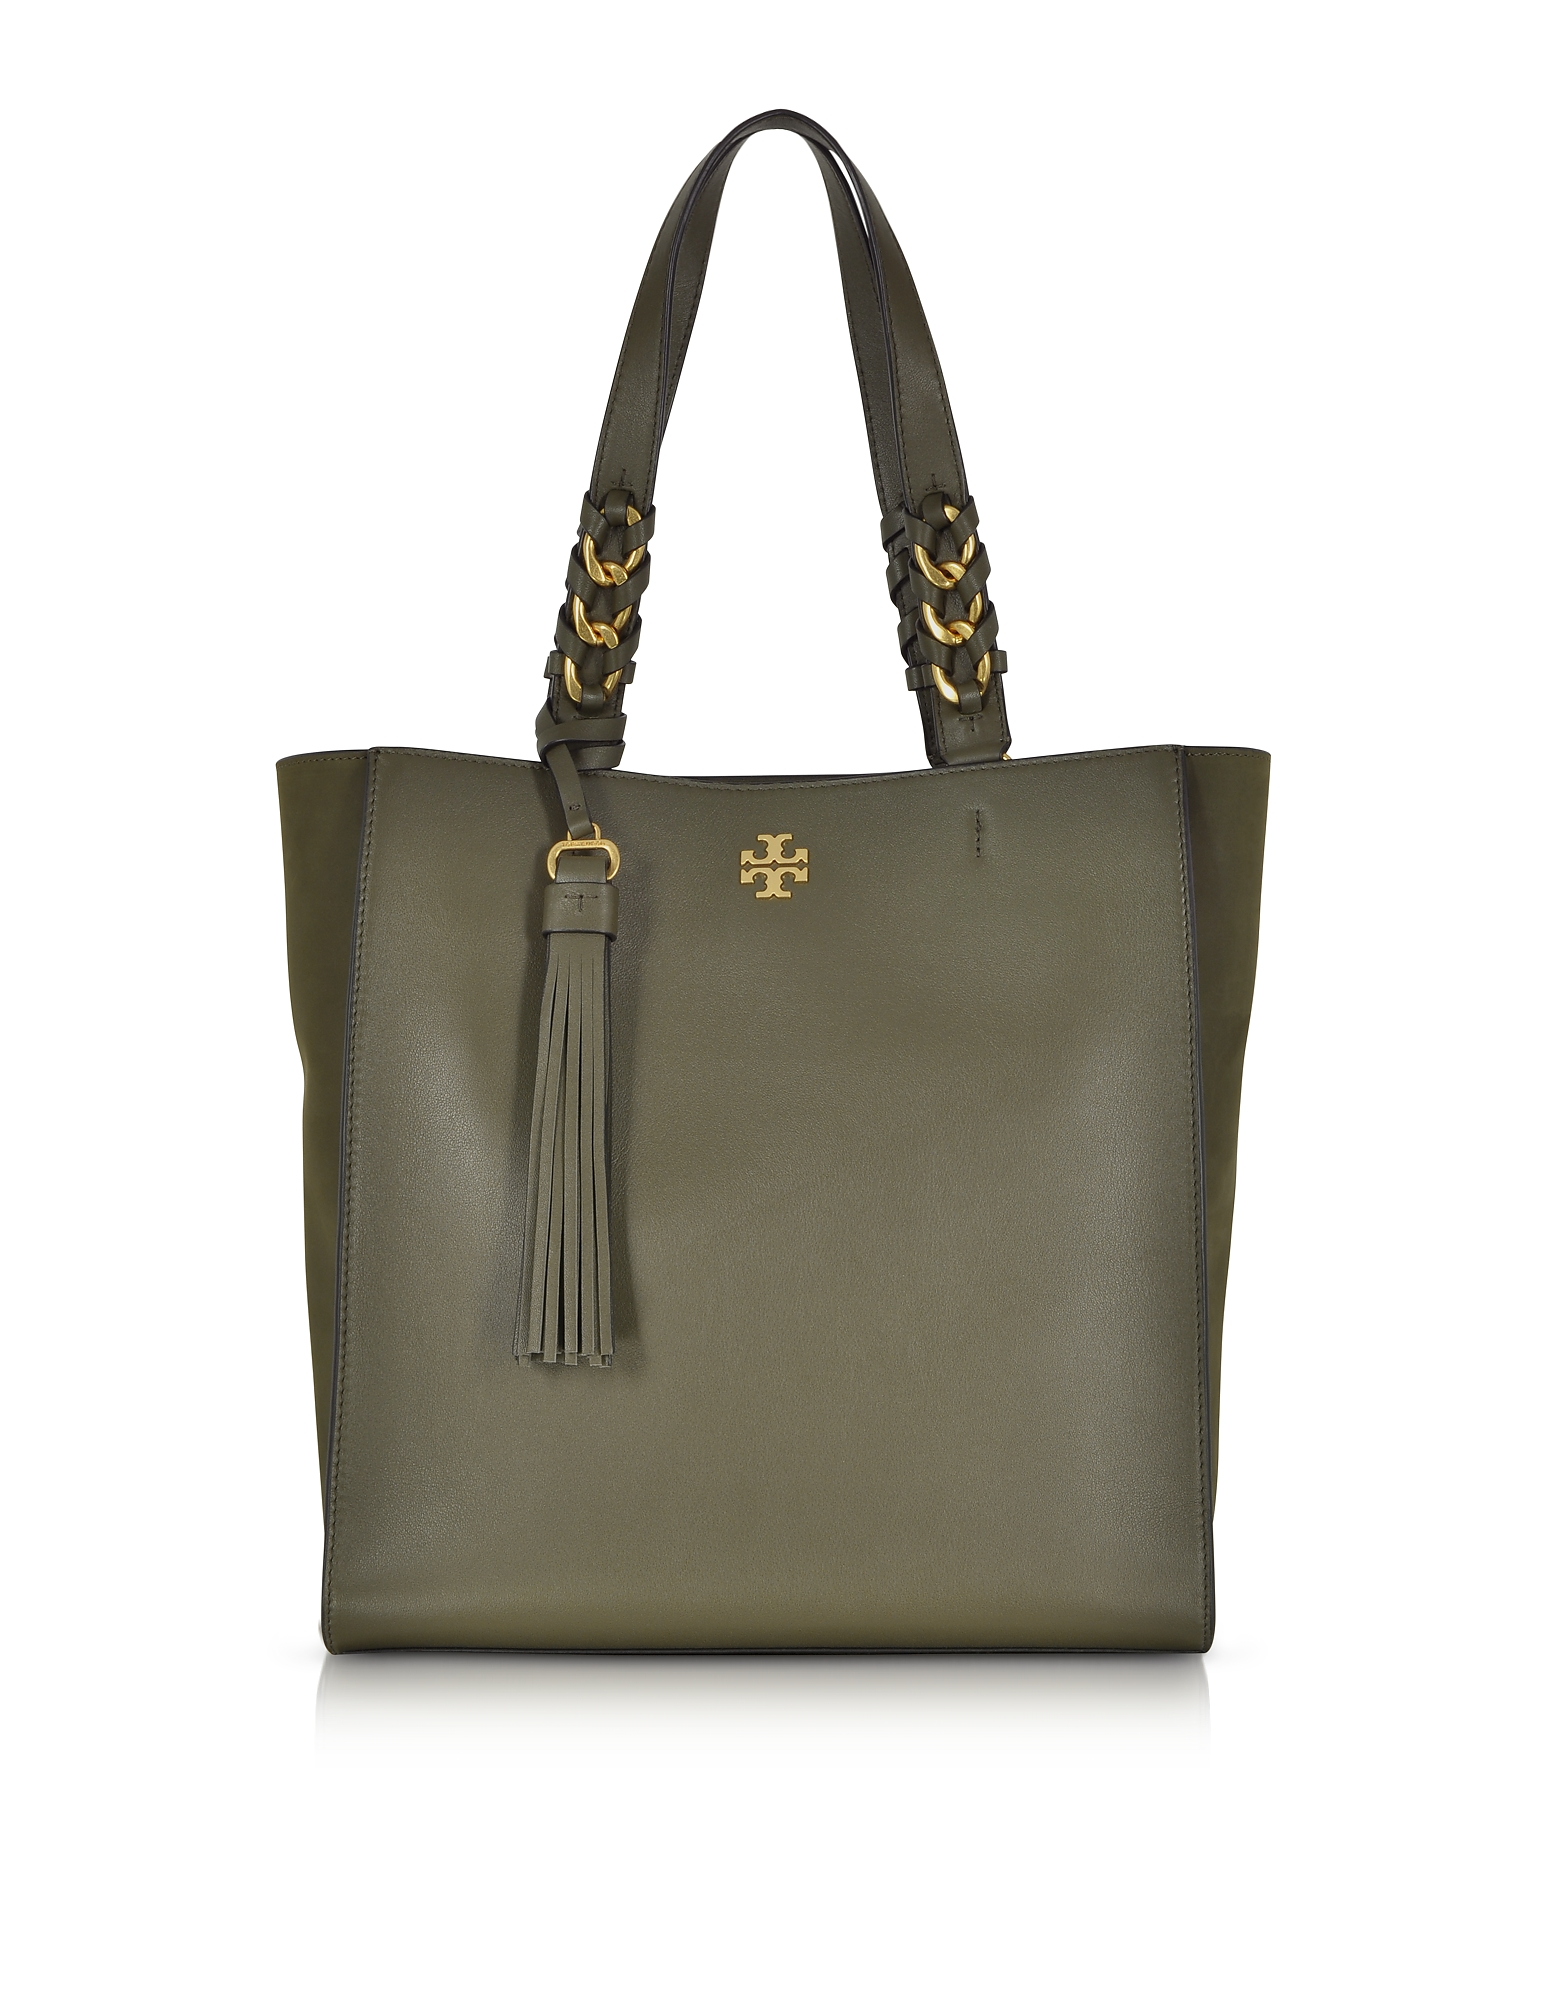 Tory Burch Handbags, Brooke Leccio Leather Tote Bag w/Suede Trims